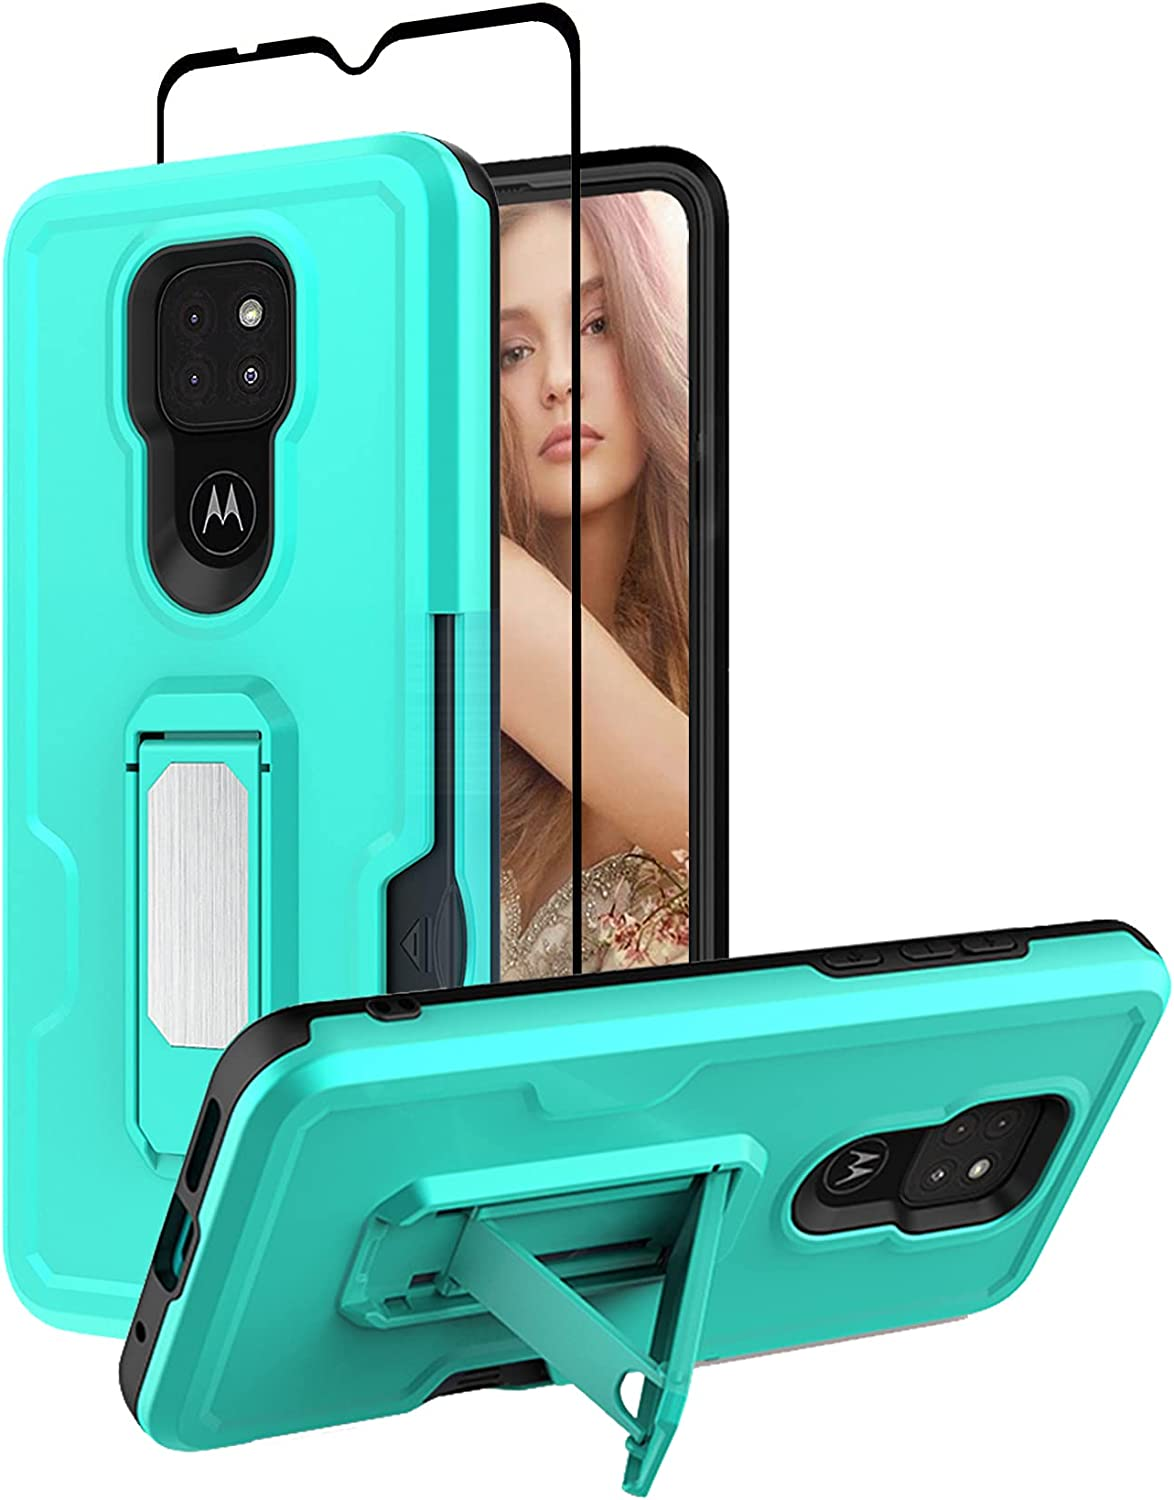 Starhemei for Moto G Play 2021 Case with Tempered Glass Screen Protector, Double Layer Armor with Kickstand Shock-Absorbing & Card Slot Phone Case for Motorola Moto G Play 2021 (MintGreen)